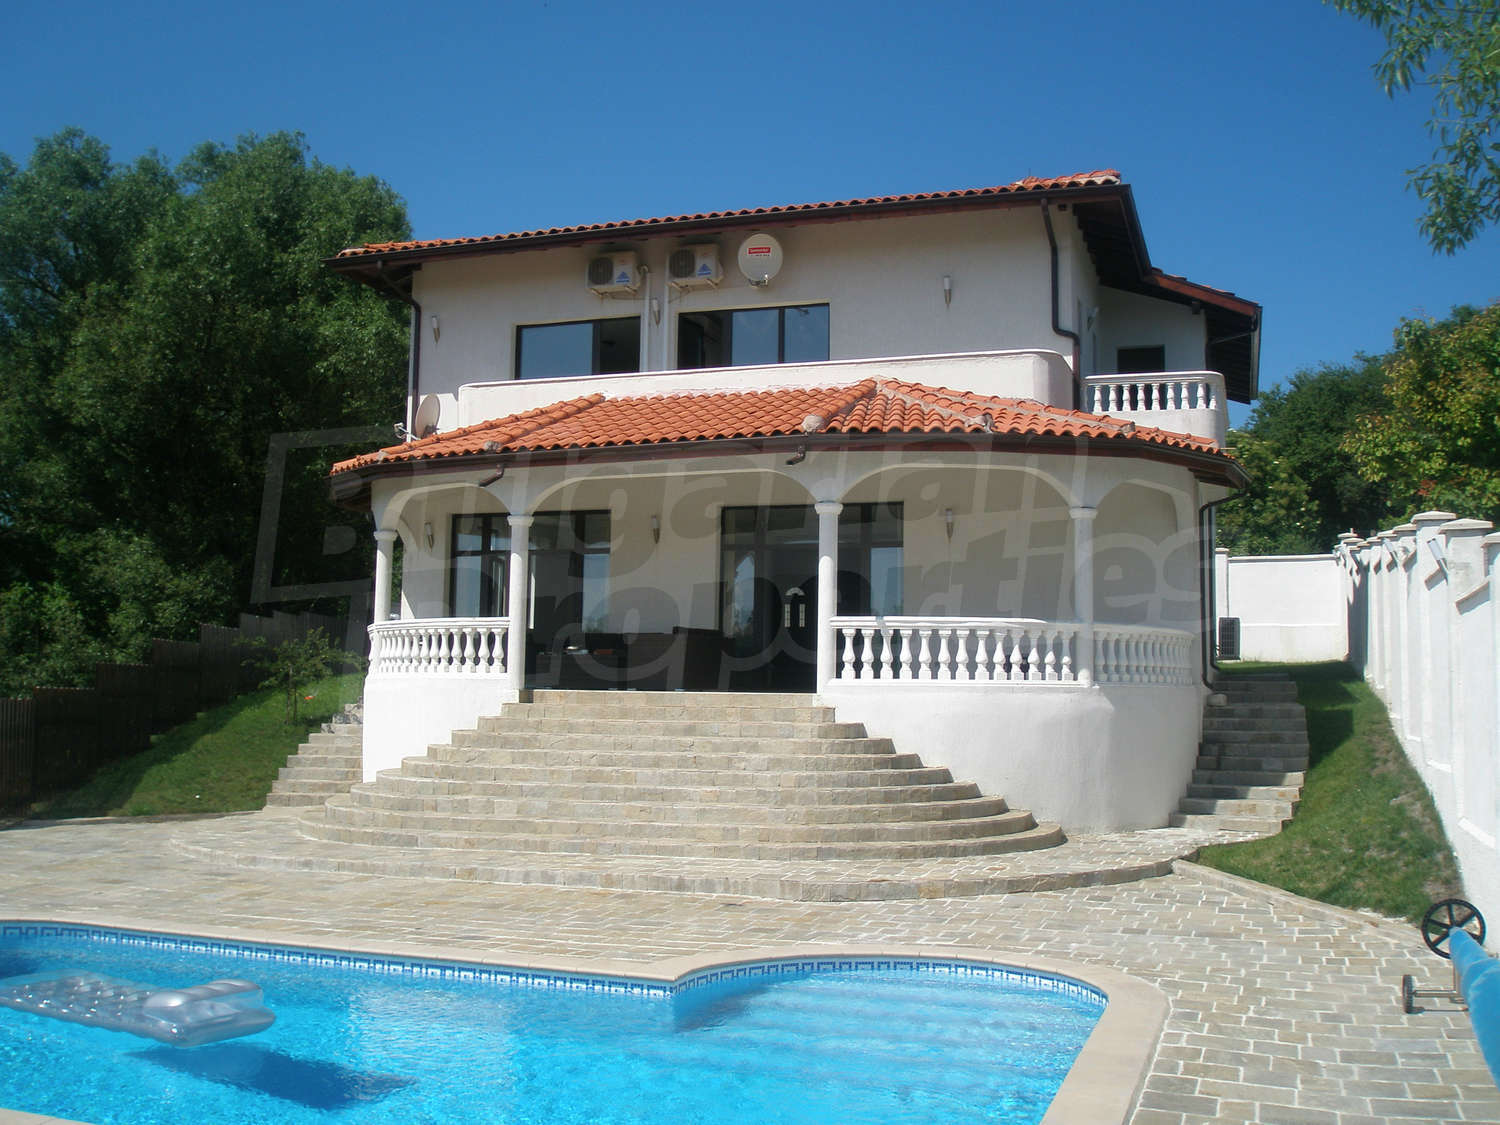 House for sale near varna bulgaria fully furnished for Big house for sale with swimming pool